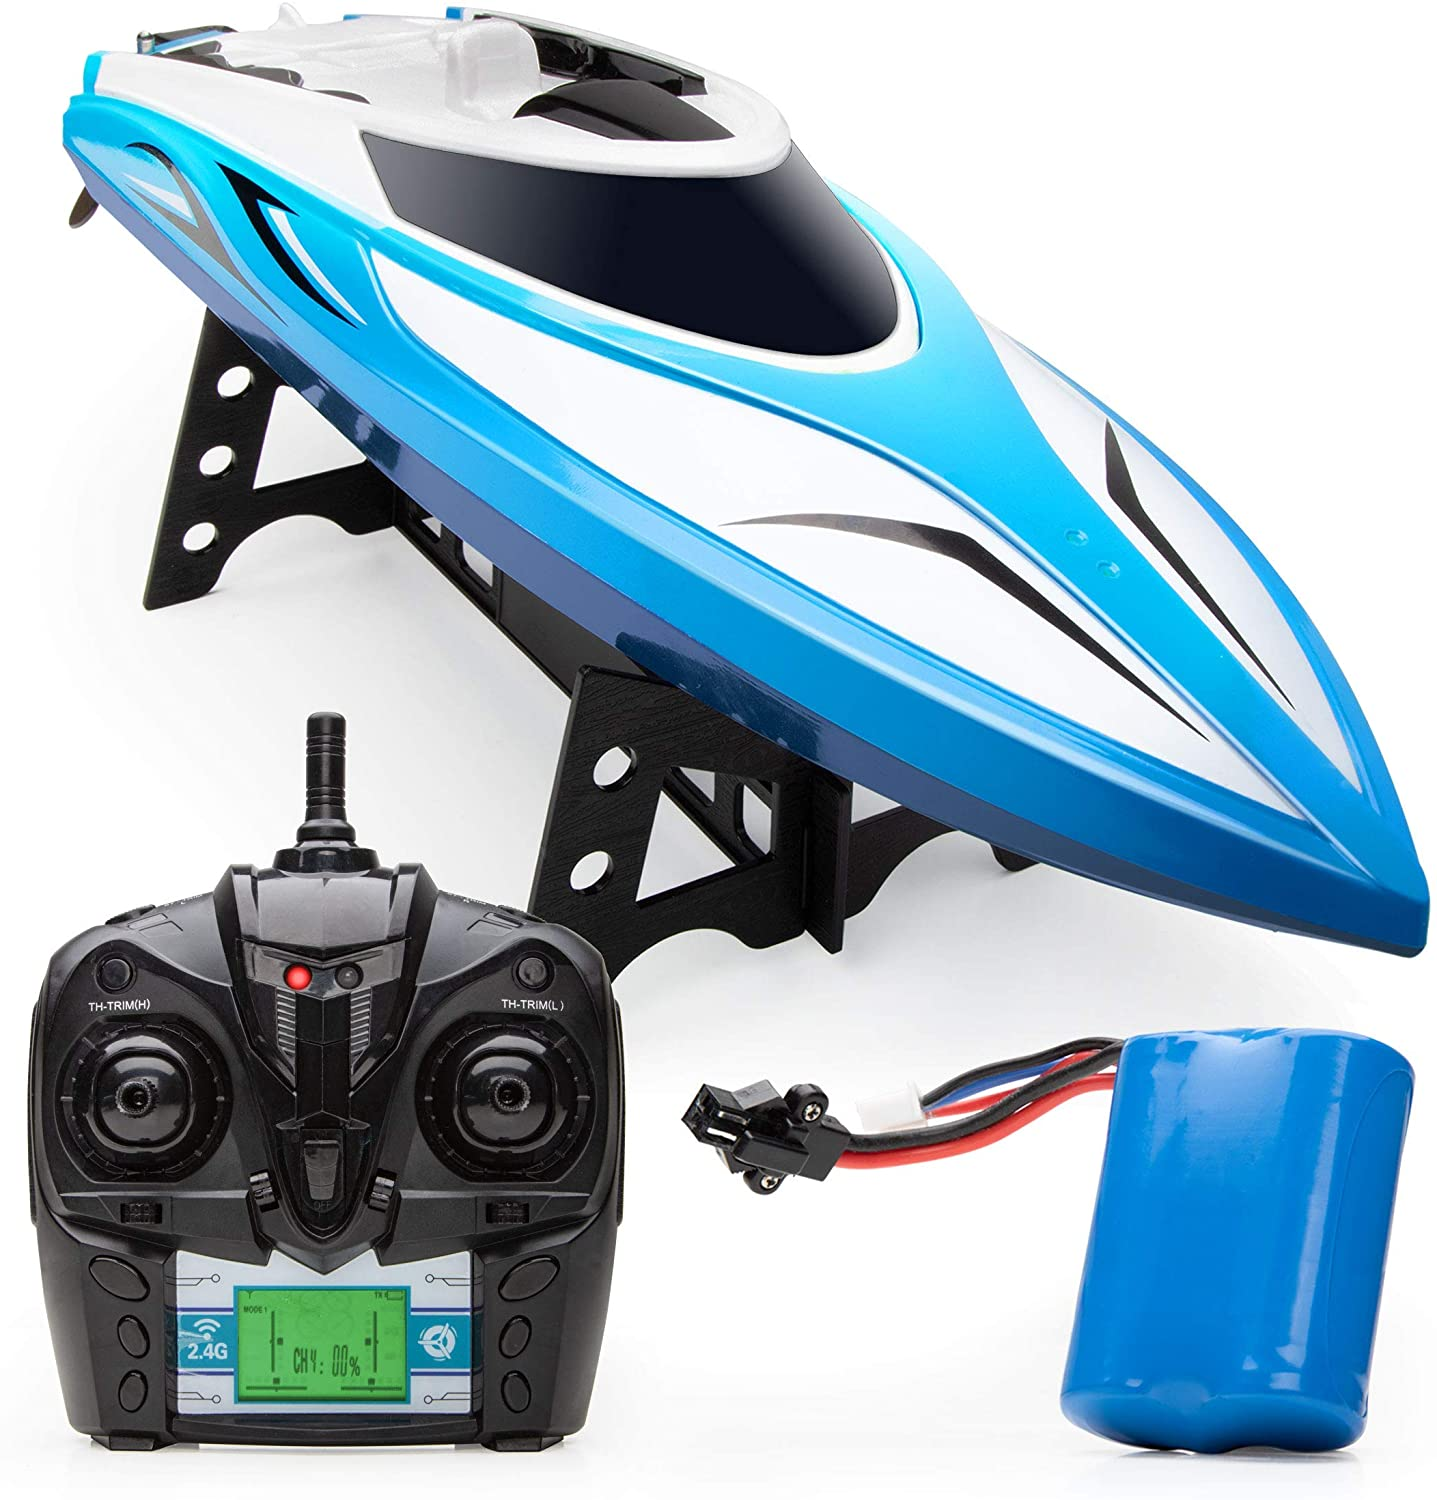 Top 8 Best Remote Control Boats For Beginners - 2020 (Best RC Boats) 3